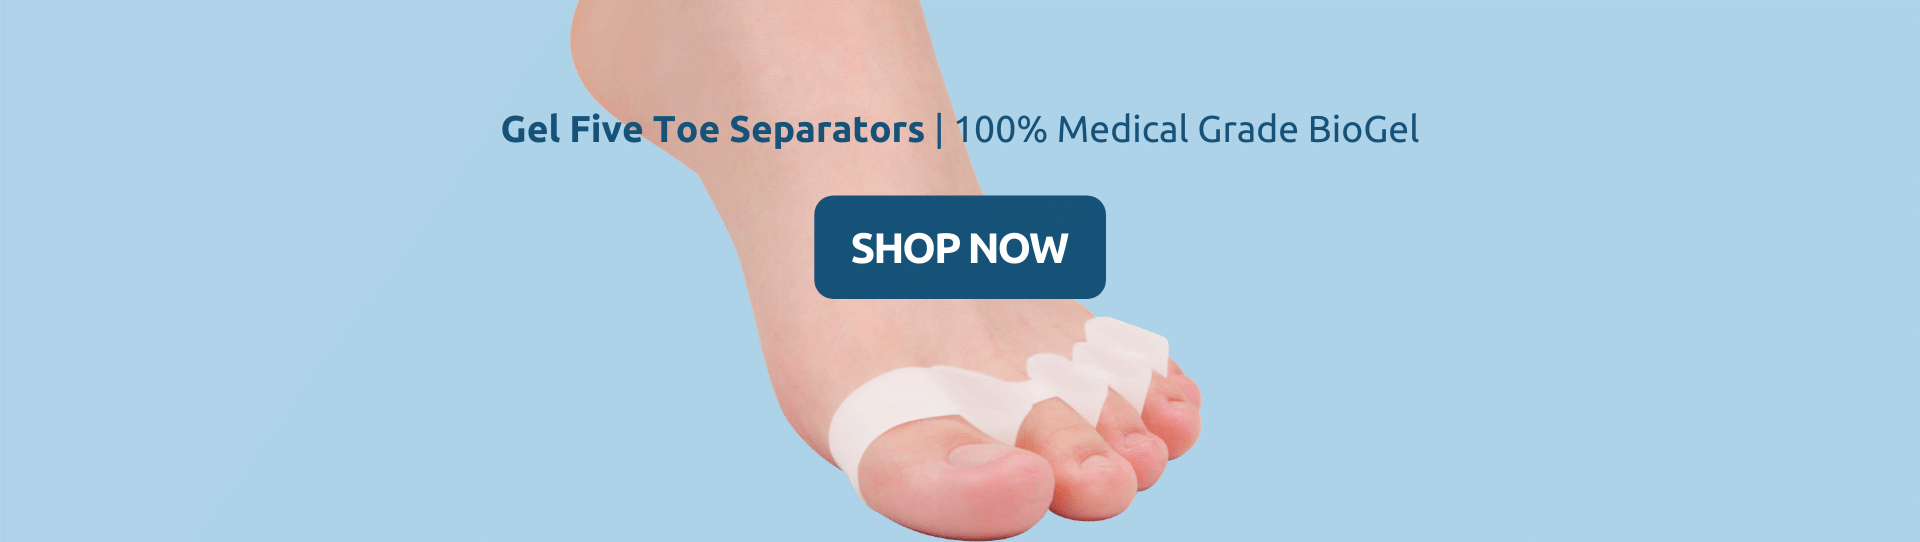 Buy Gel Five Toe Separators With 100% BioGel